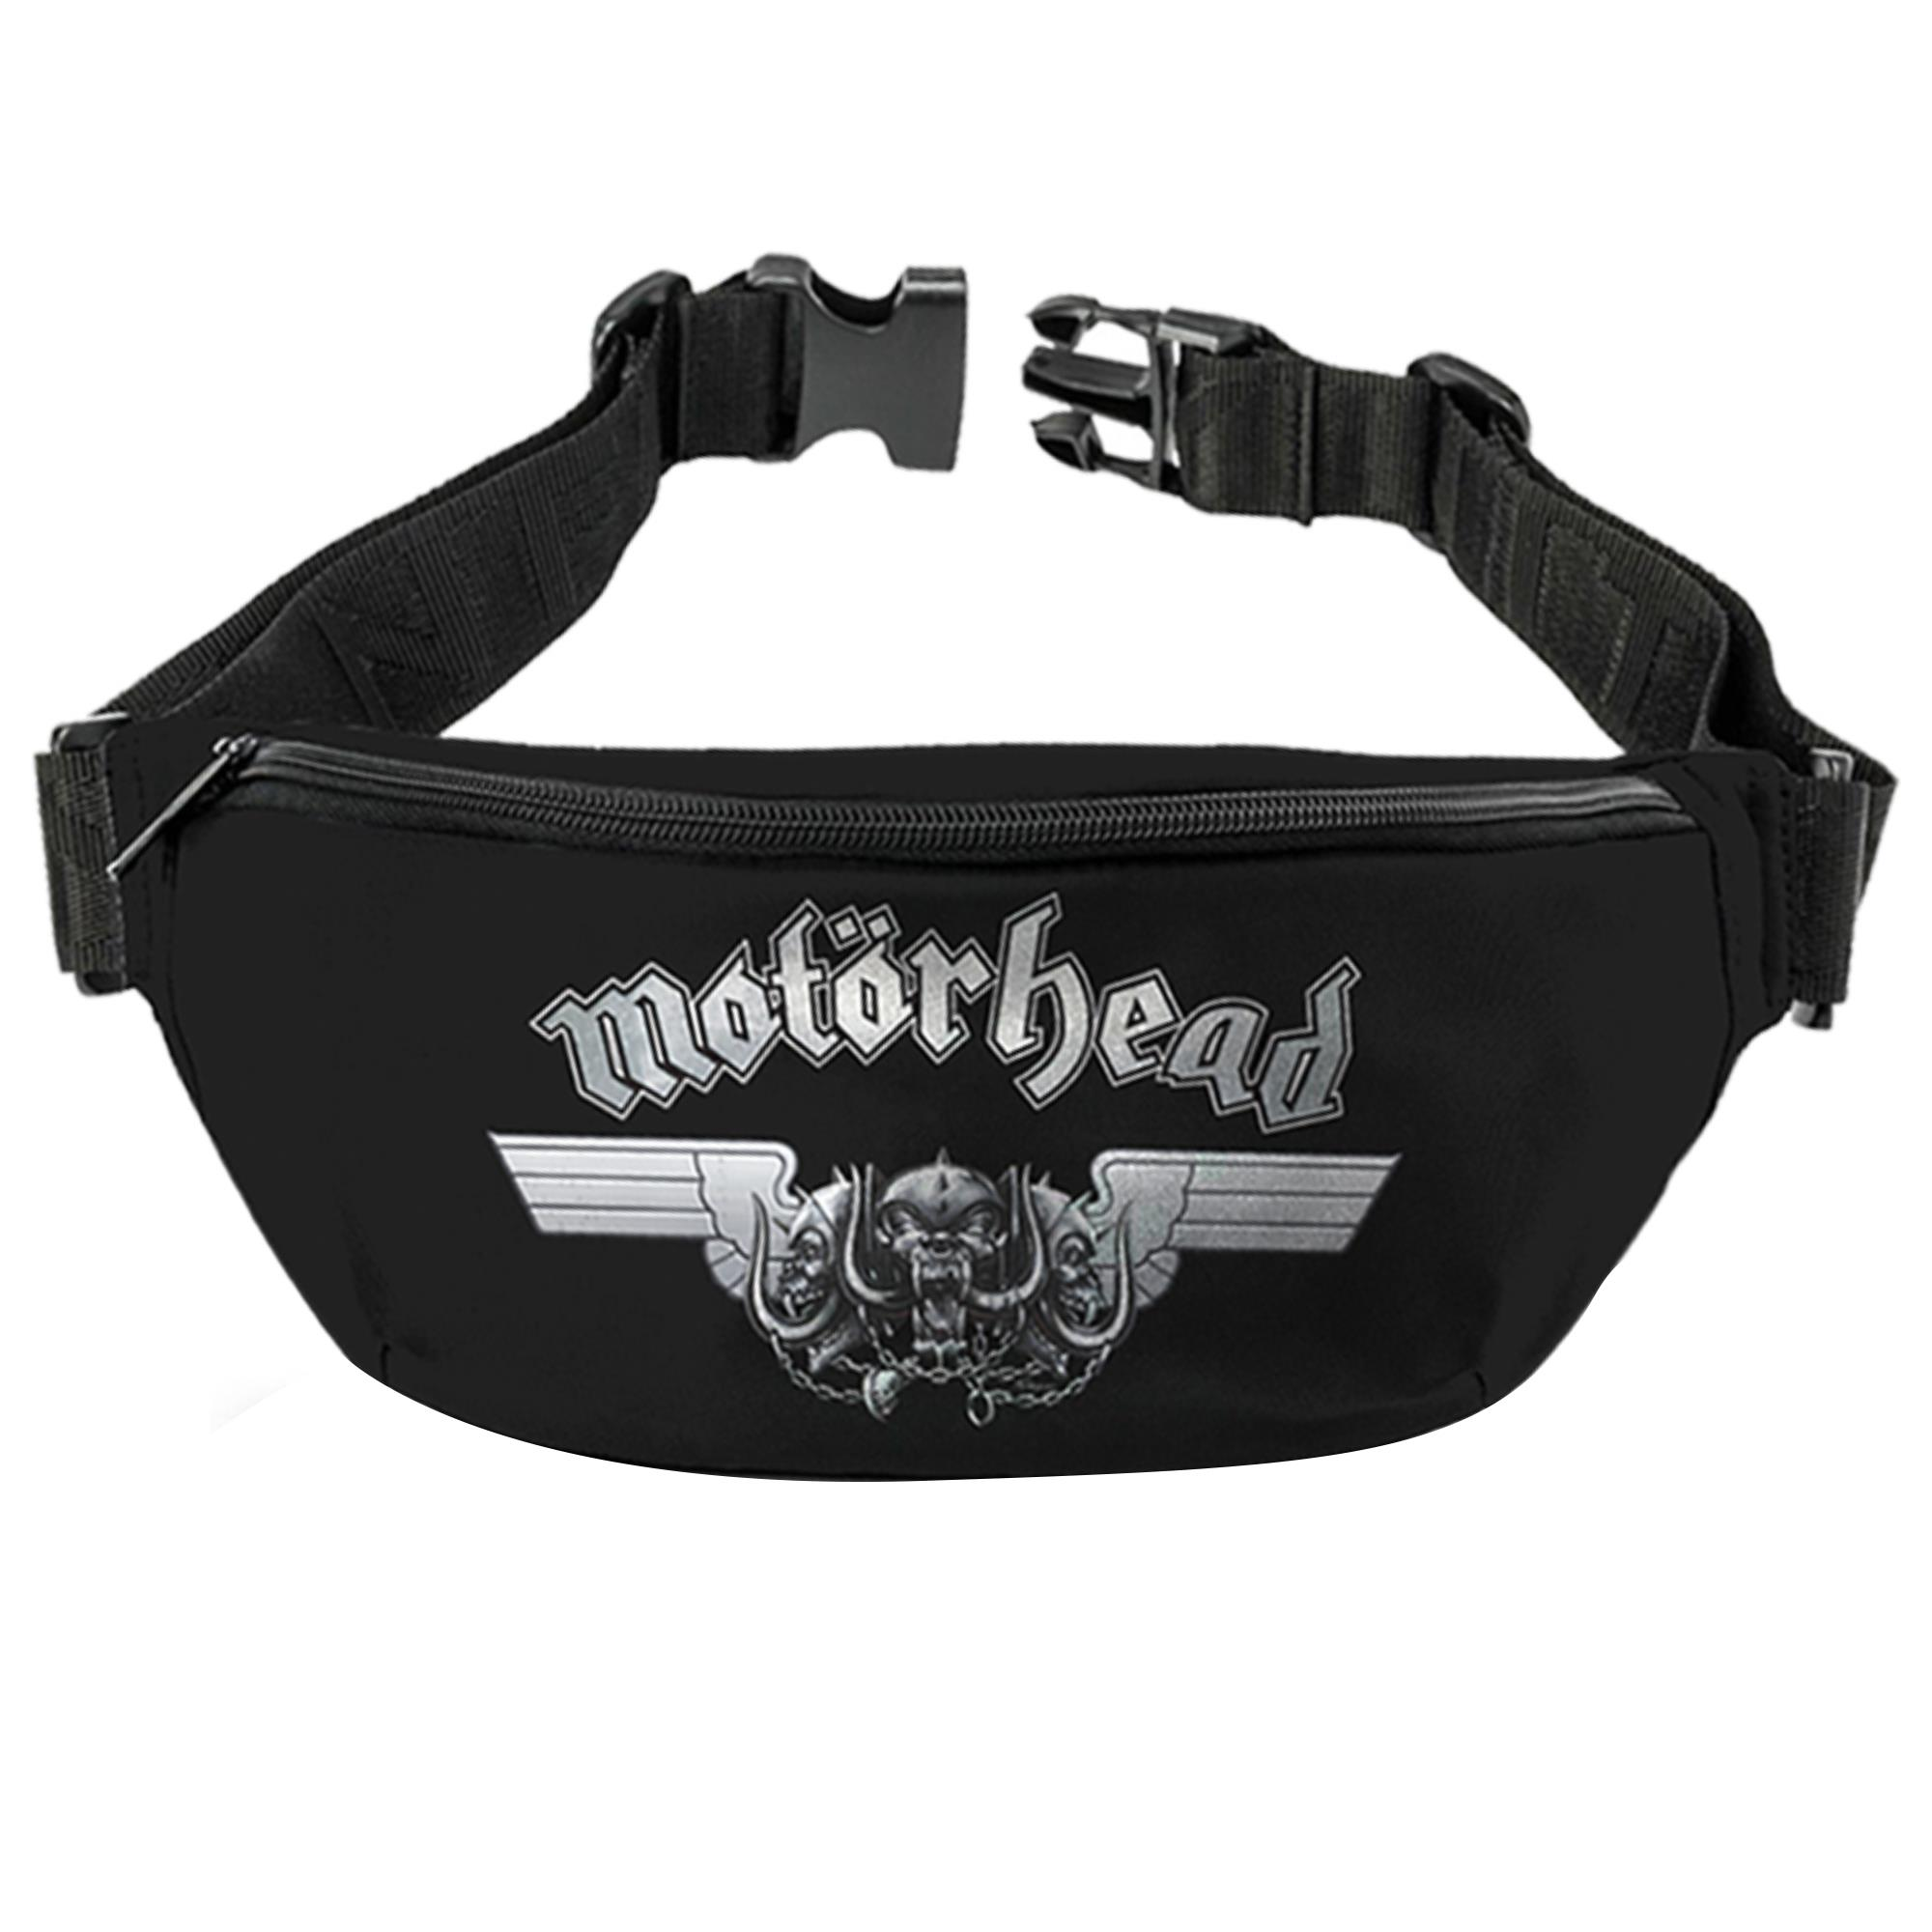 Winged Logo Fanny pack